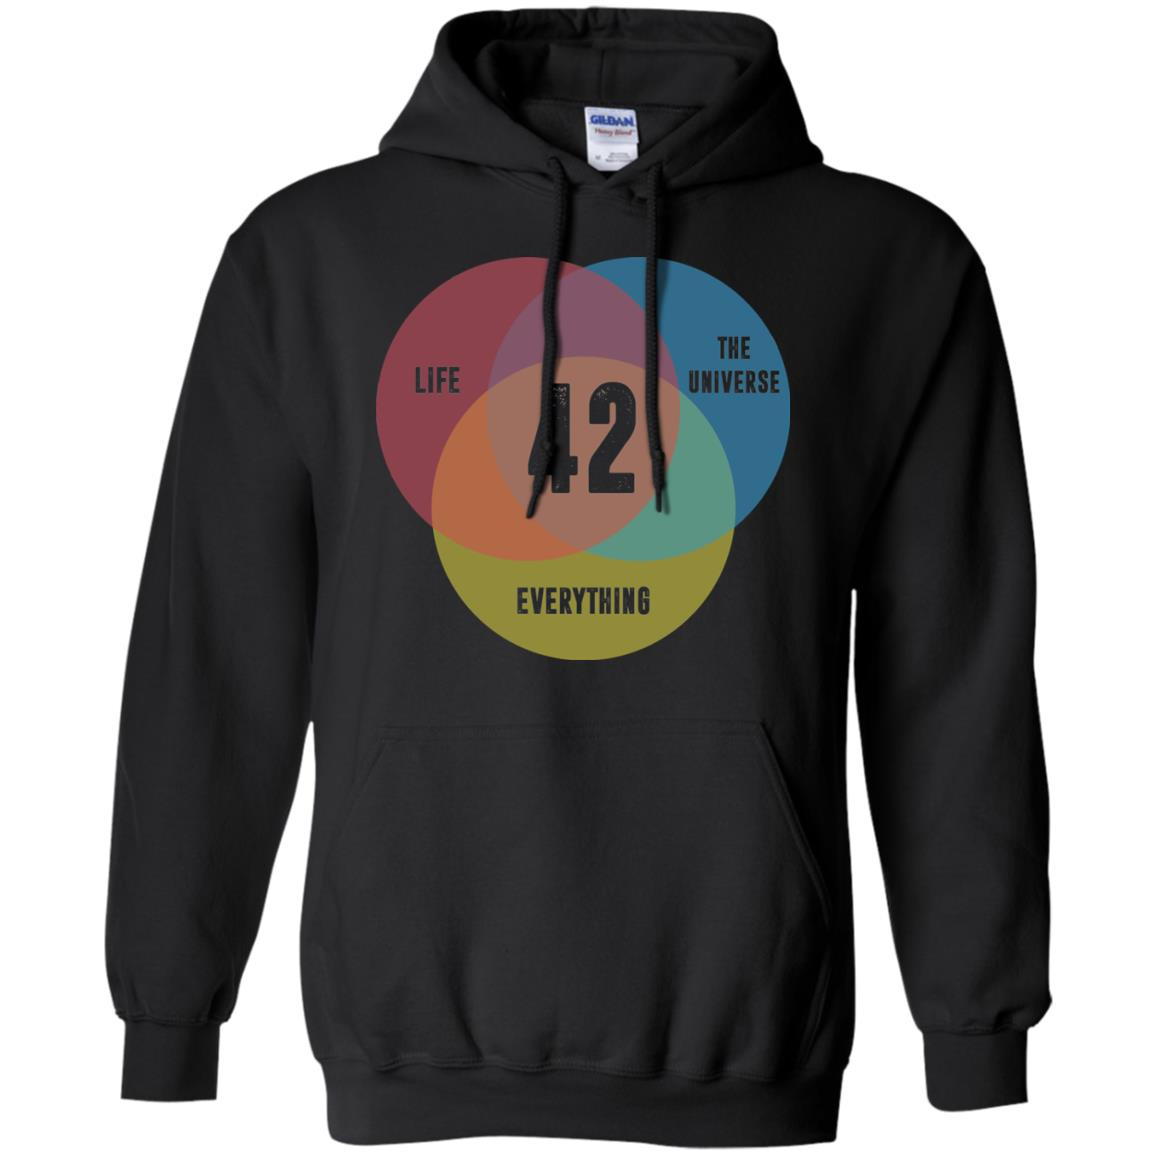 hight resolution of image 474px venn diagram 42 life the universe everything t shirt